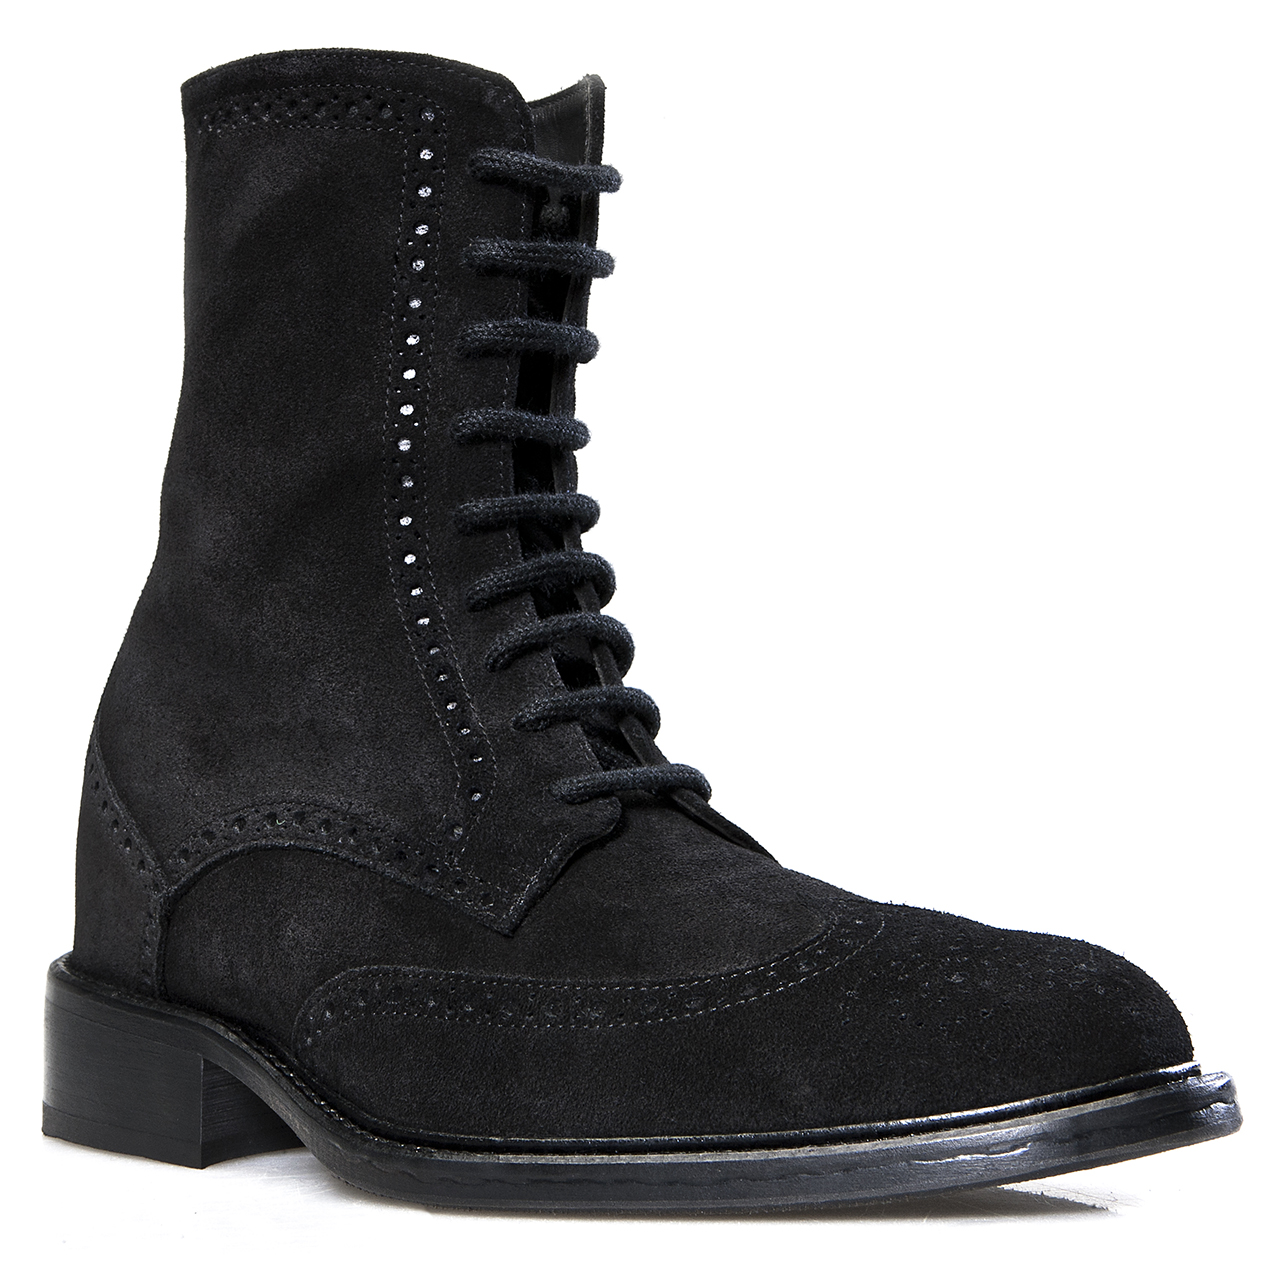 Chicago Elevator Boots For Men Guidomaggi